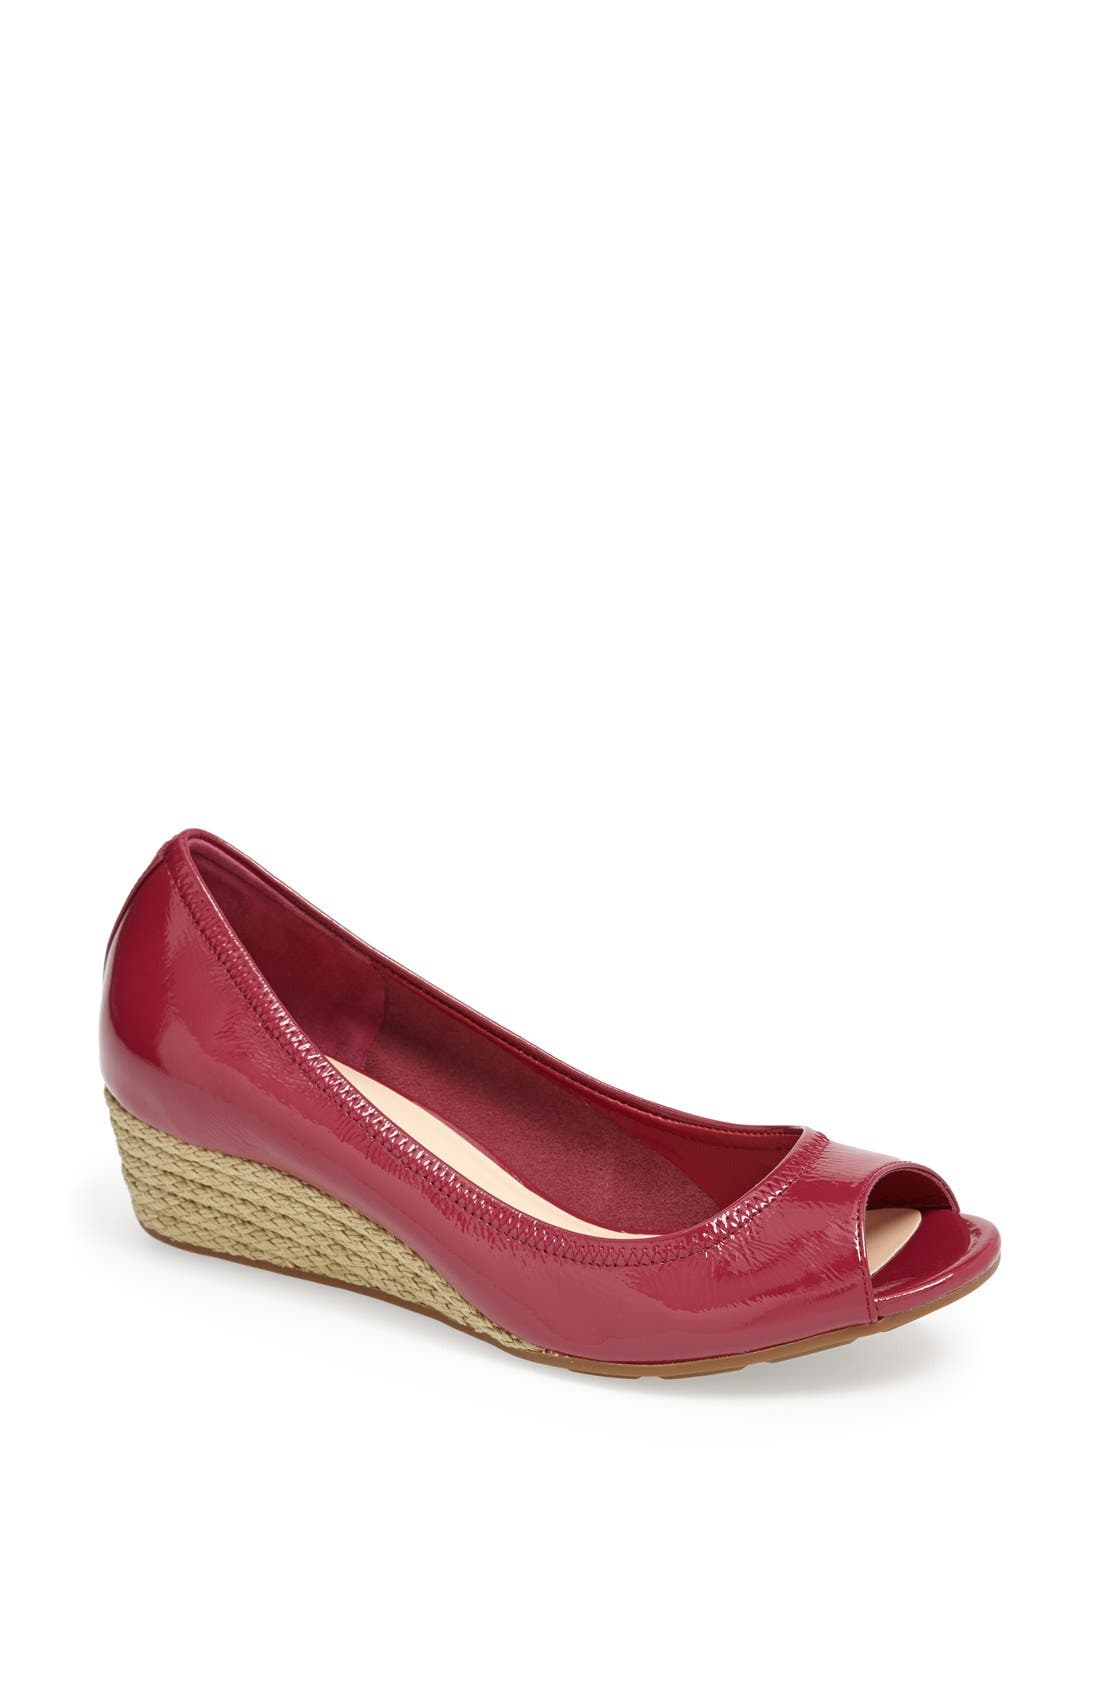 Main Image - Cole Haan 'Air Tali' Peeptoe Wedge